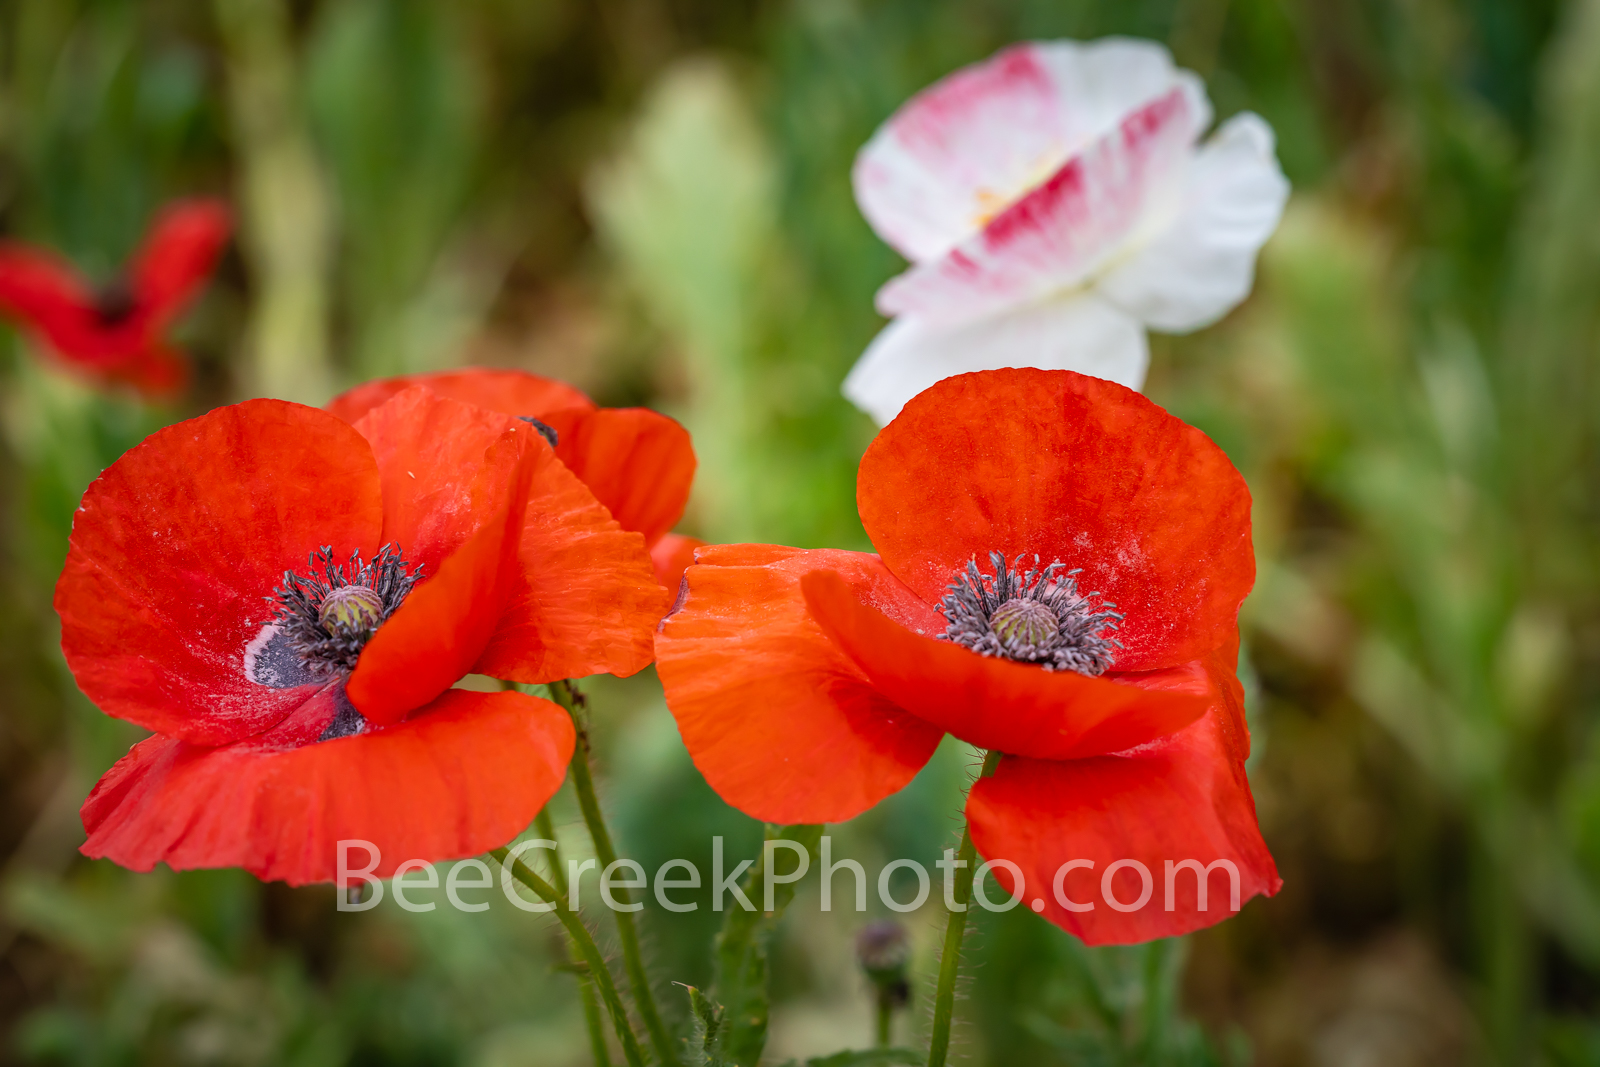 Poppie Close Up - A couple of red corn poppies and a pink poppy in this field of poppies flowers. Some also call these the common...